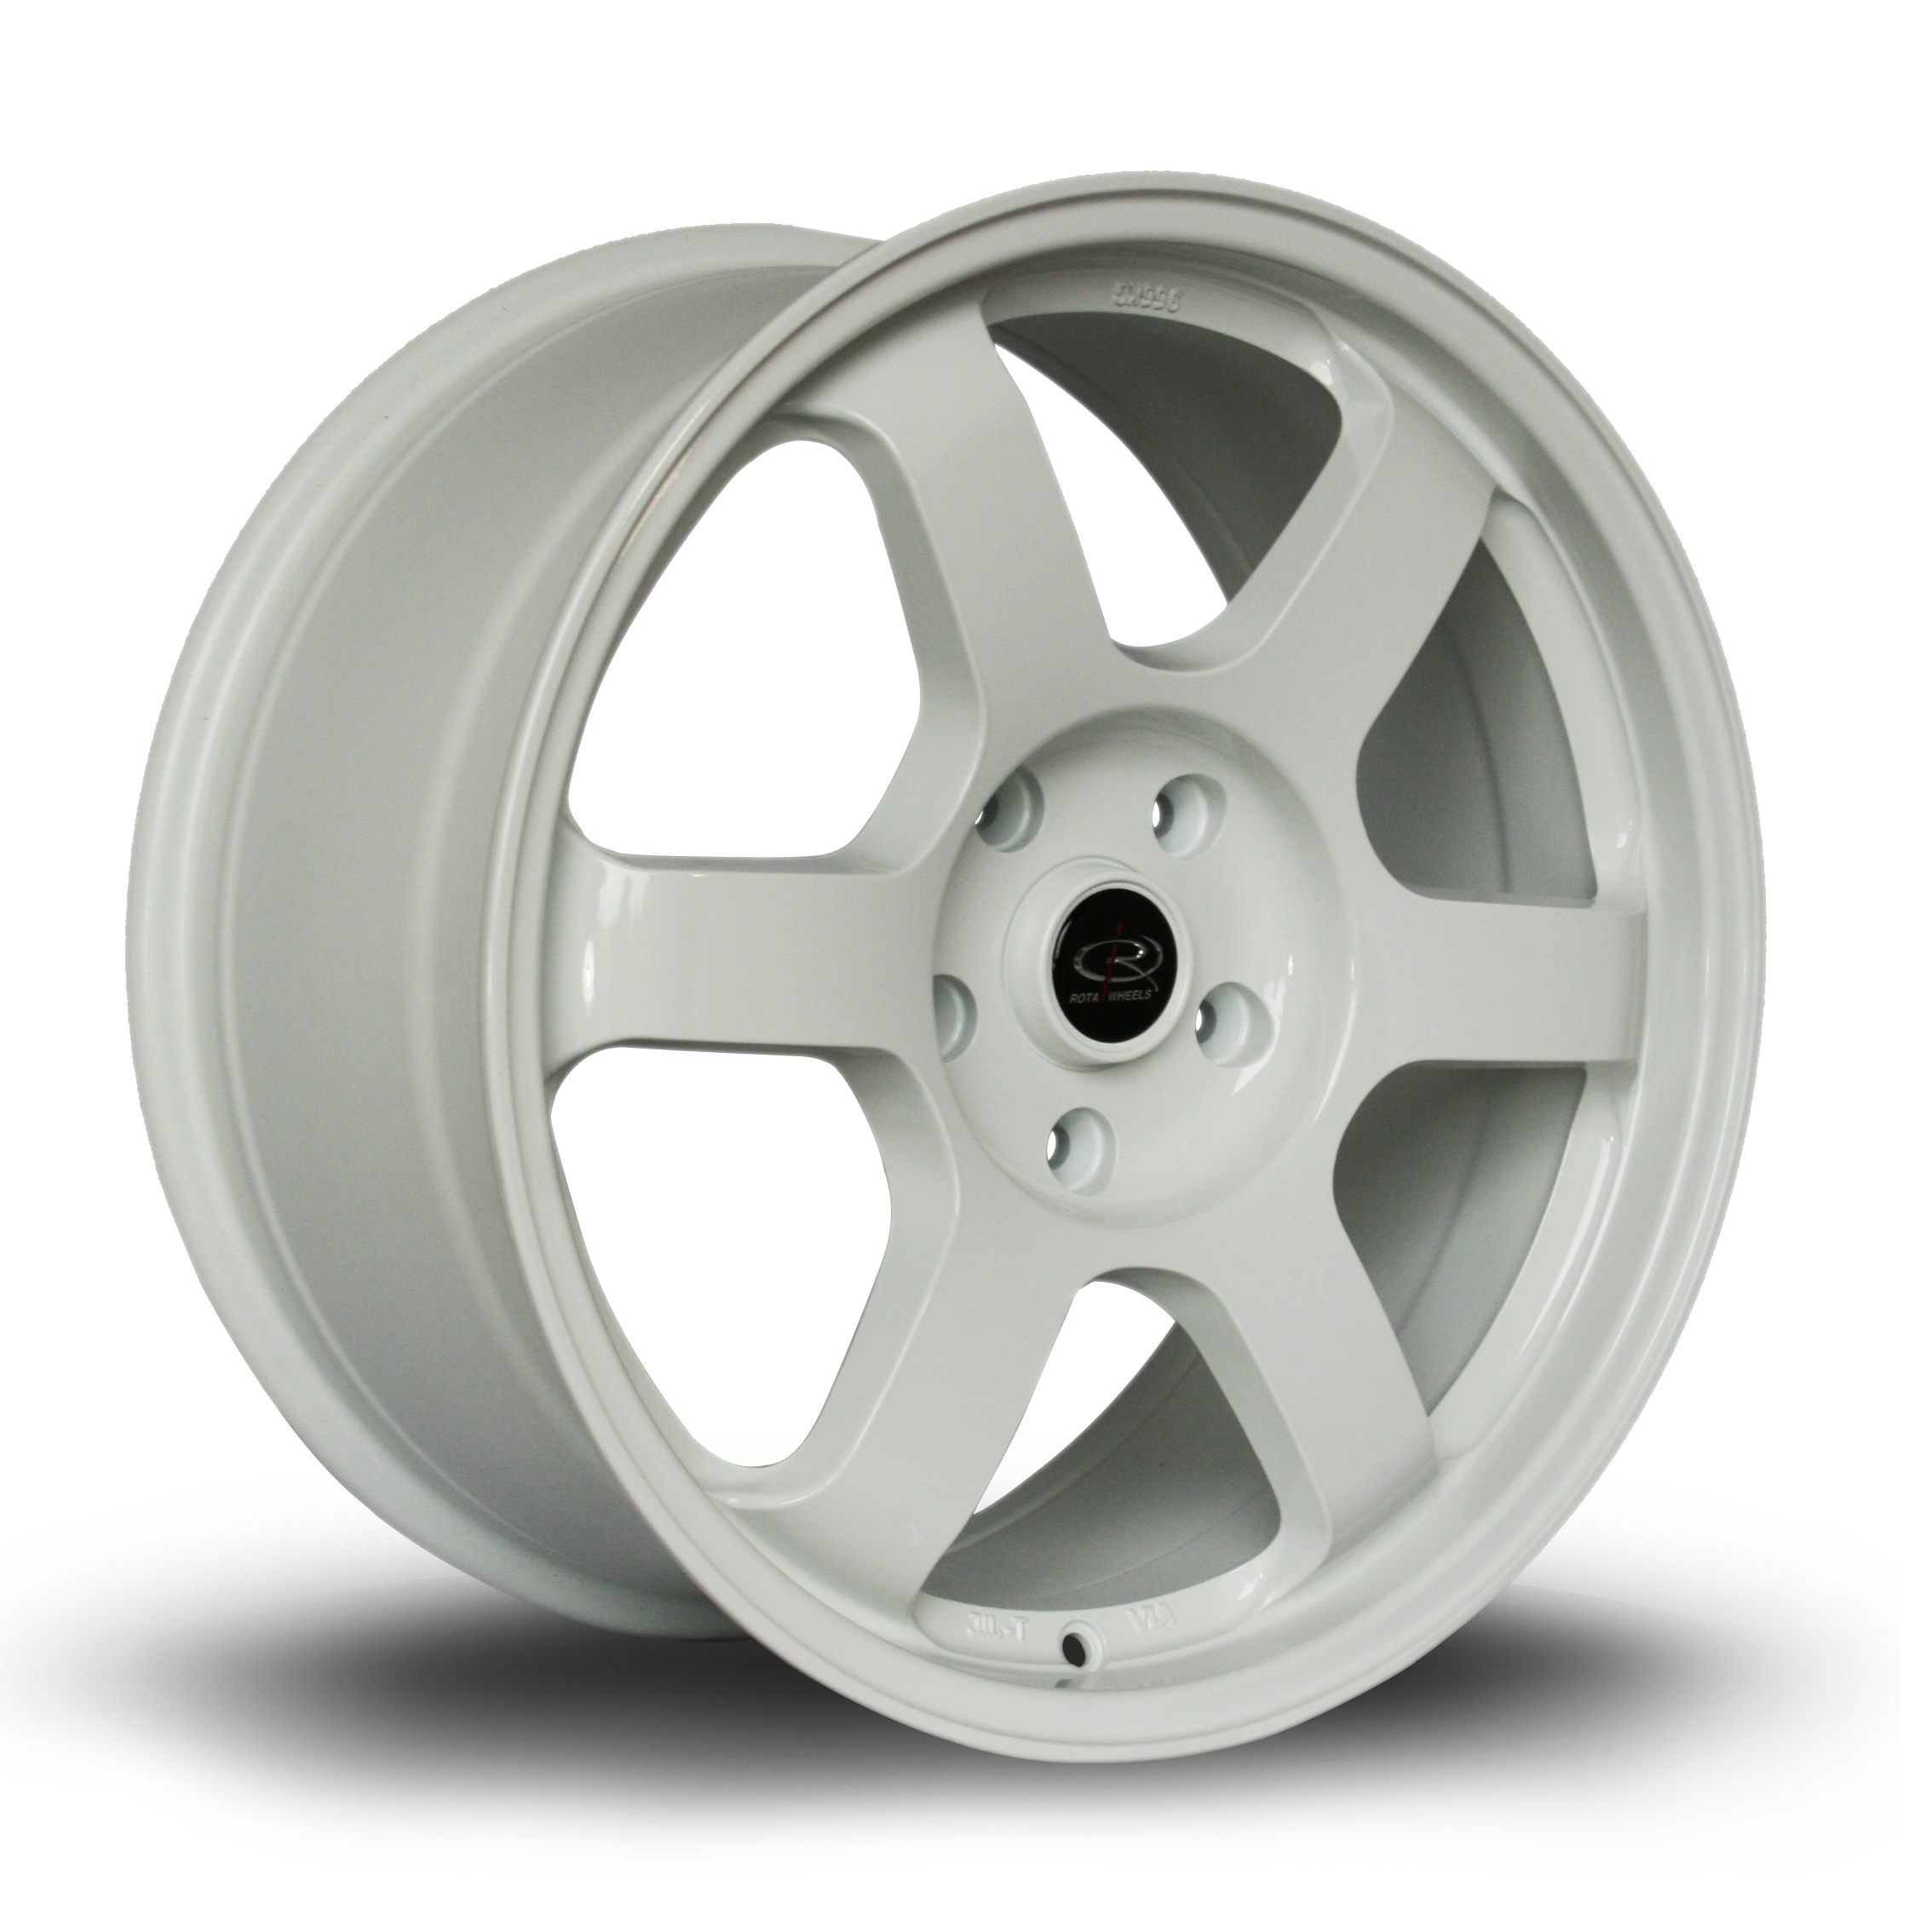 Rota Grid Van wheels